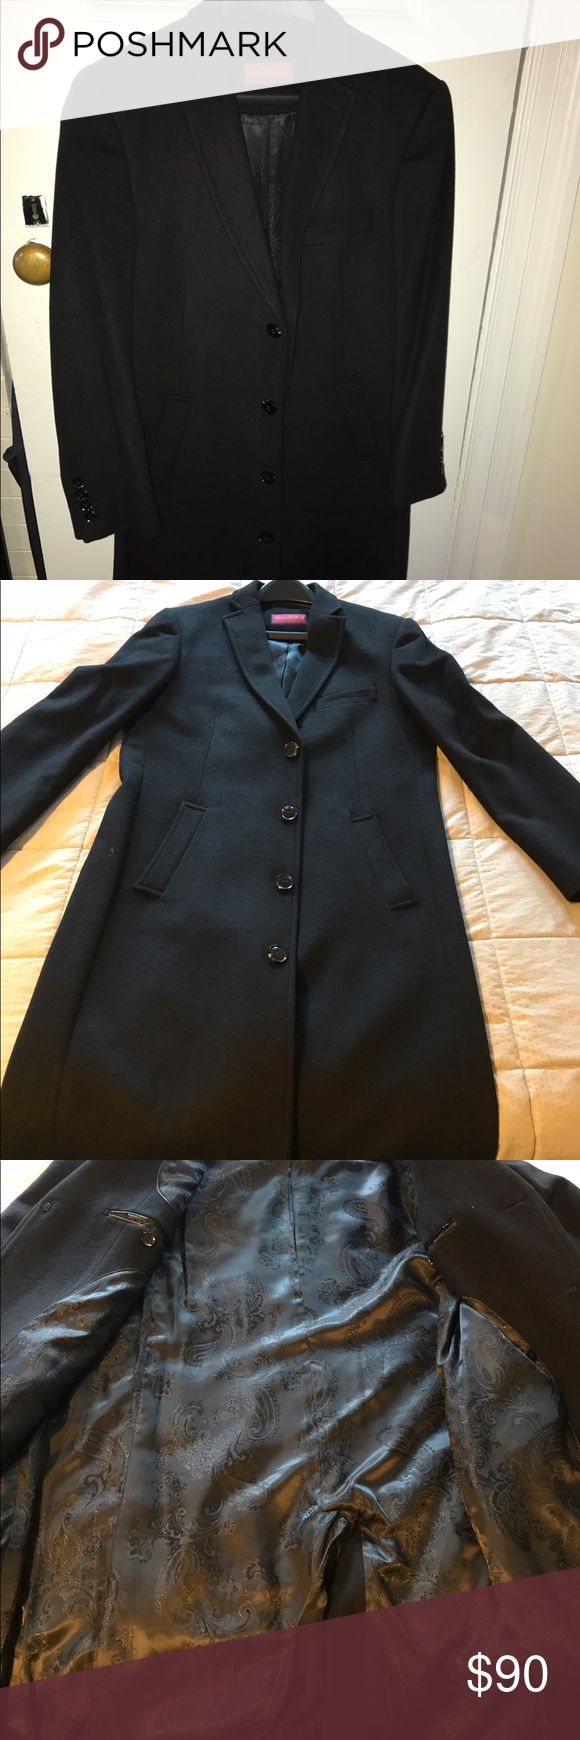 Men's Full Length Mantoni Dress Coat I'm selling a lightly used Mantoni Dress Coat, Size 38R. It's intended to go down to the knees and covers a sport coat or sweater for formal occasions! Mantoni Jackets & Coats Pea Coats